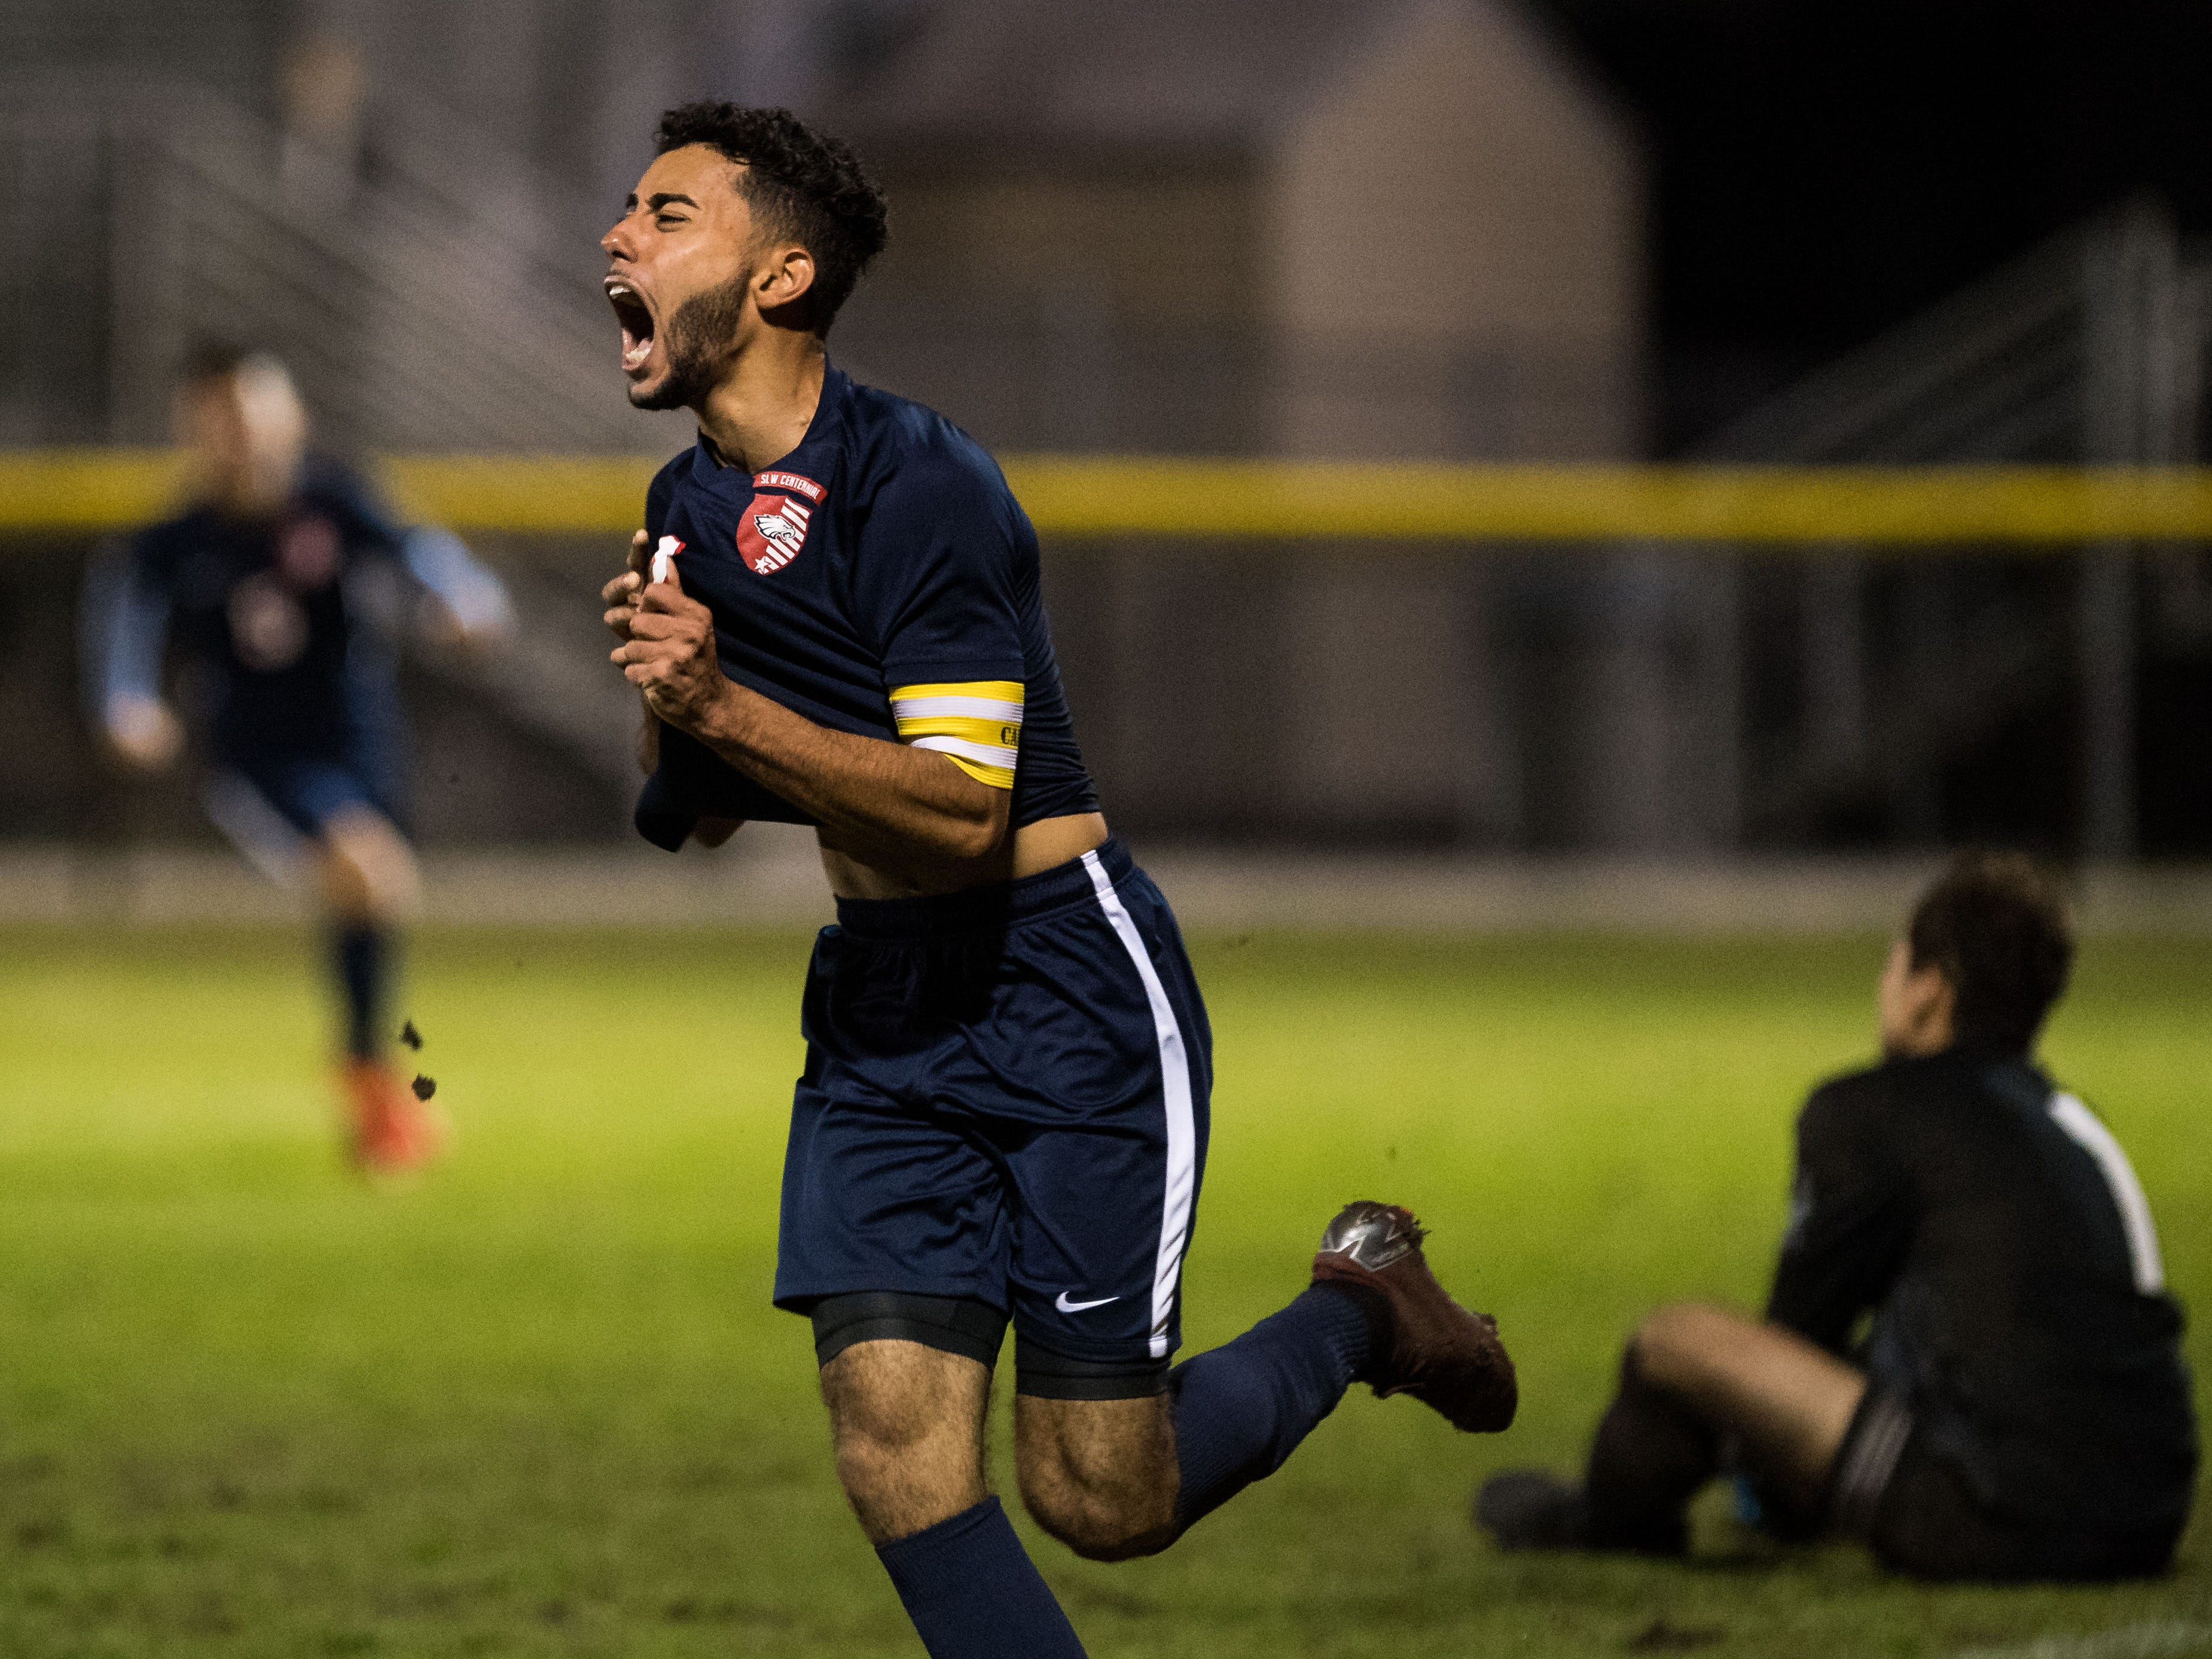 St. Lucie West Centennial's Rian Jamai celebrates scoring the game-winning goal with two minutes left in the second half against Jupiter during the high school boys soccer District 10-5A championship Friday, Feb. 1, 2019, at South County Regional Stadium in Port St. Lucie.